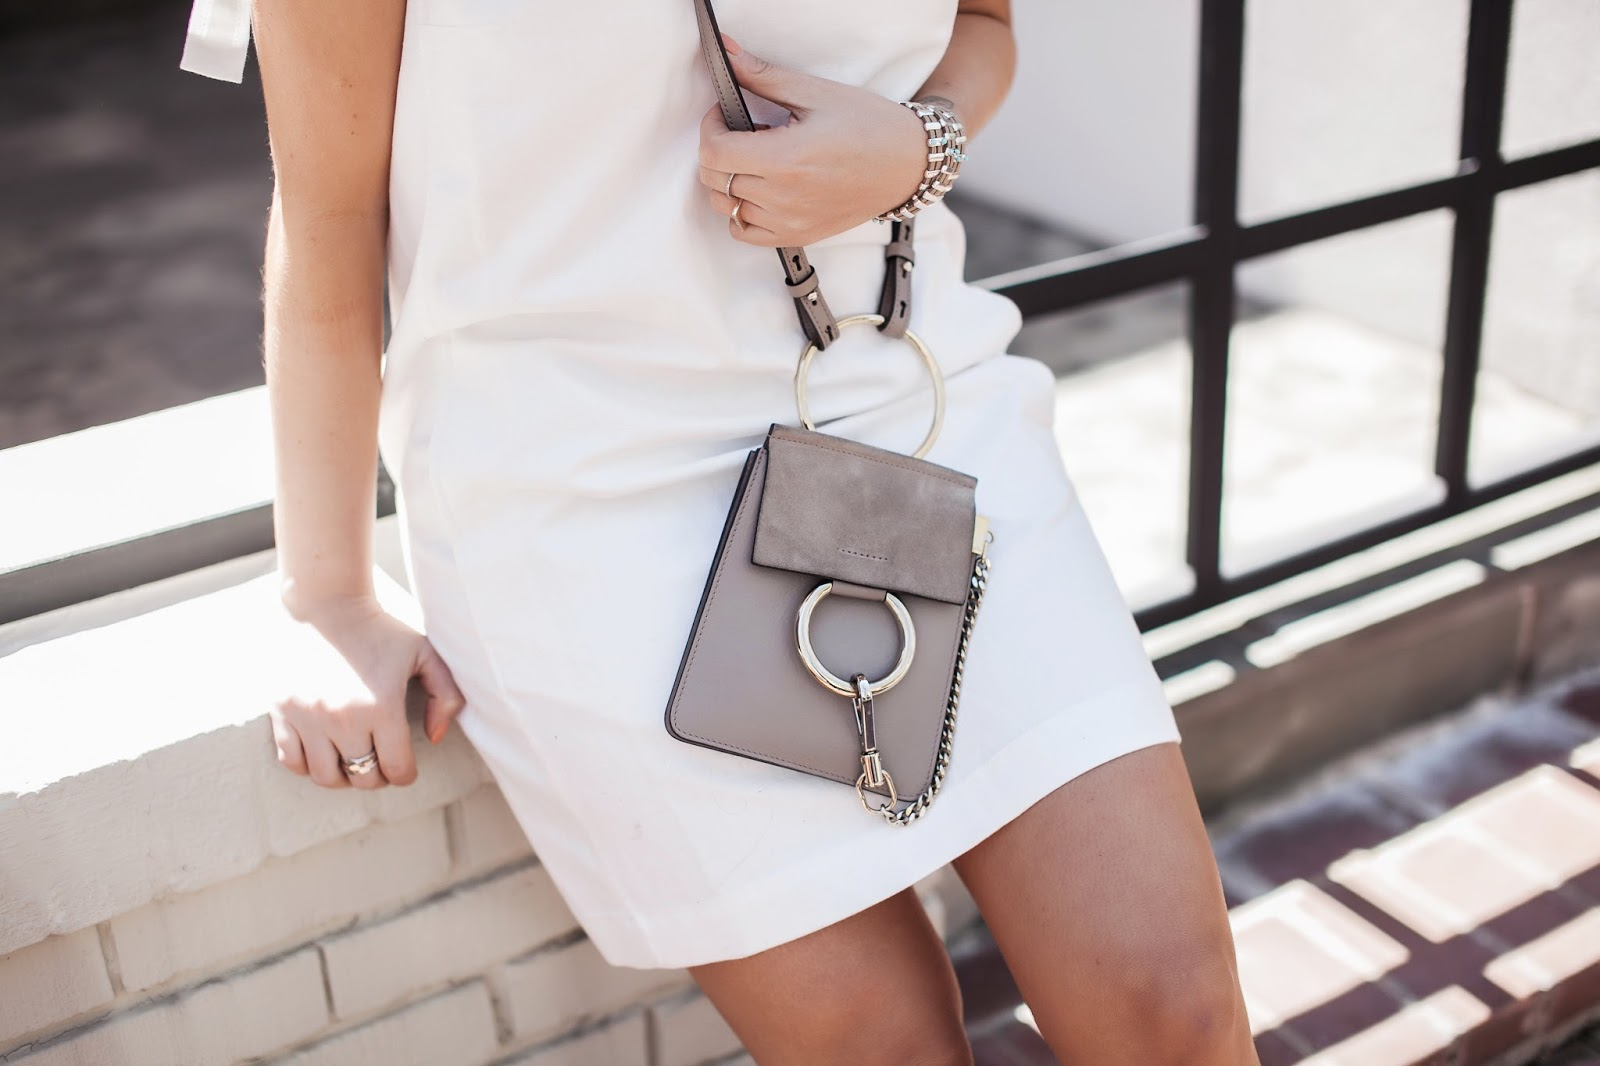 chloe bag, mini faye, chloe bracelet, bag, chloe, outfit, blogger, style, fashion, dc, blog, french connection, white dress, summer dresses, wedge, espadrille, sandals